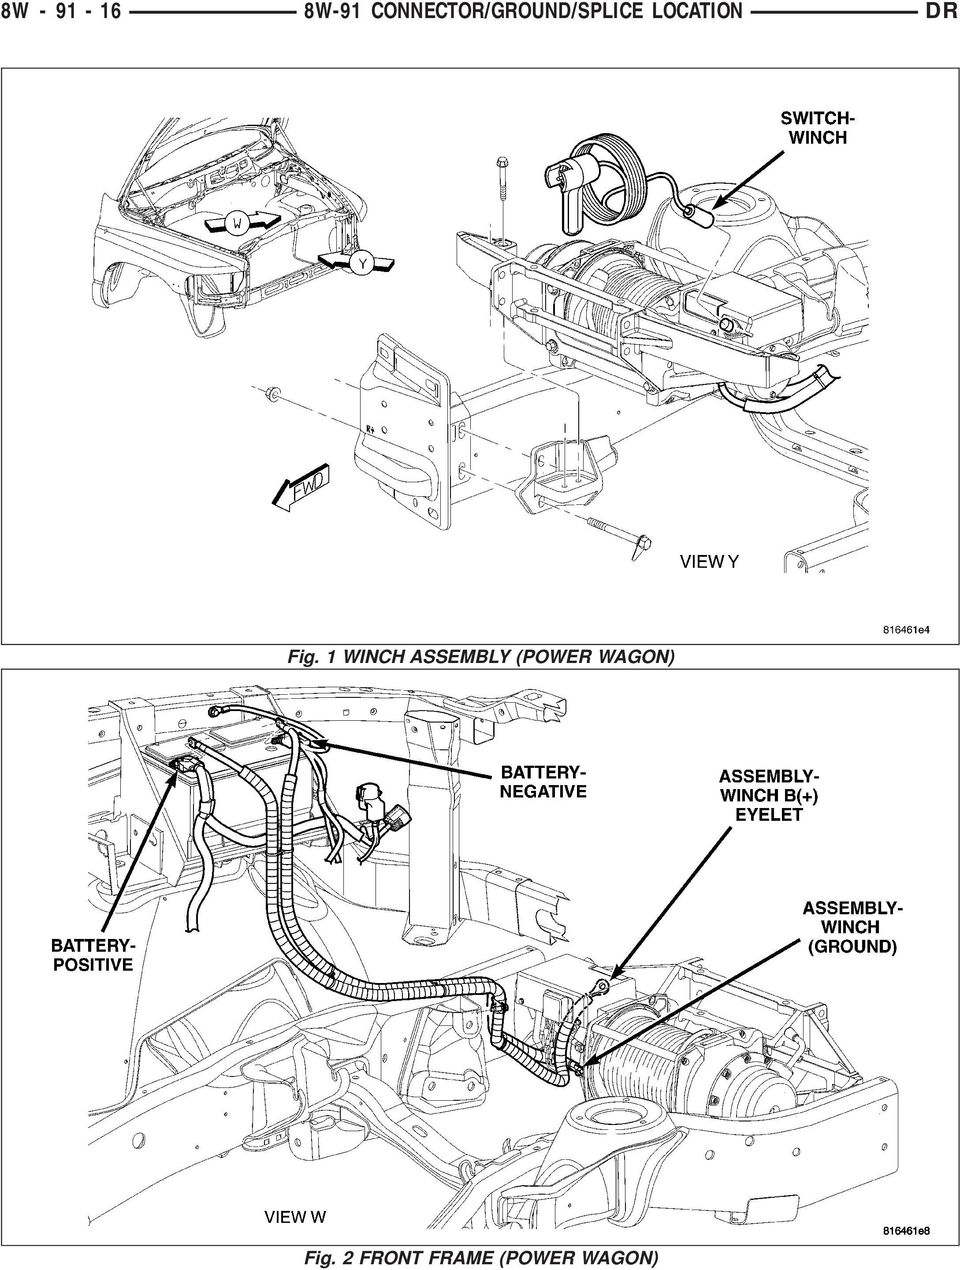 Connector Ground Splice Location Pdf 2003 Tacoma Power Window Wiring Schematic Dr Fig